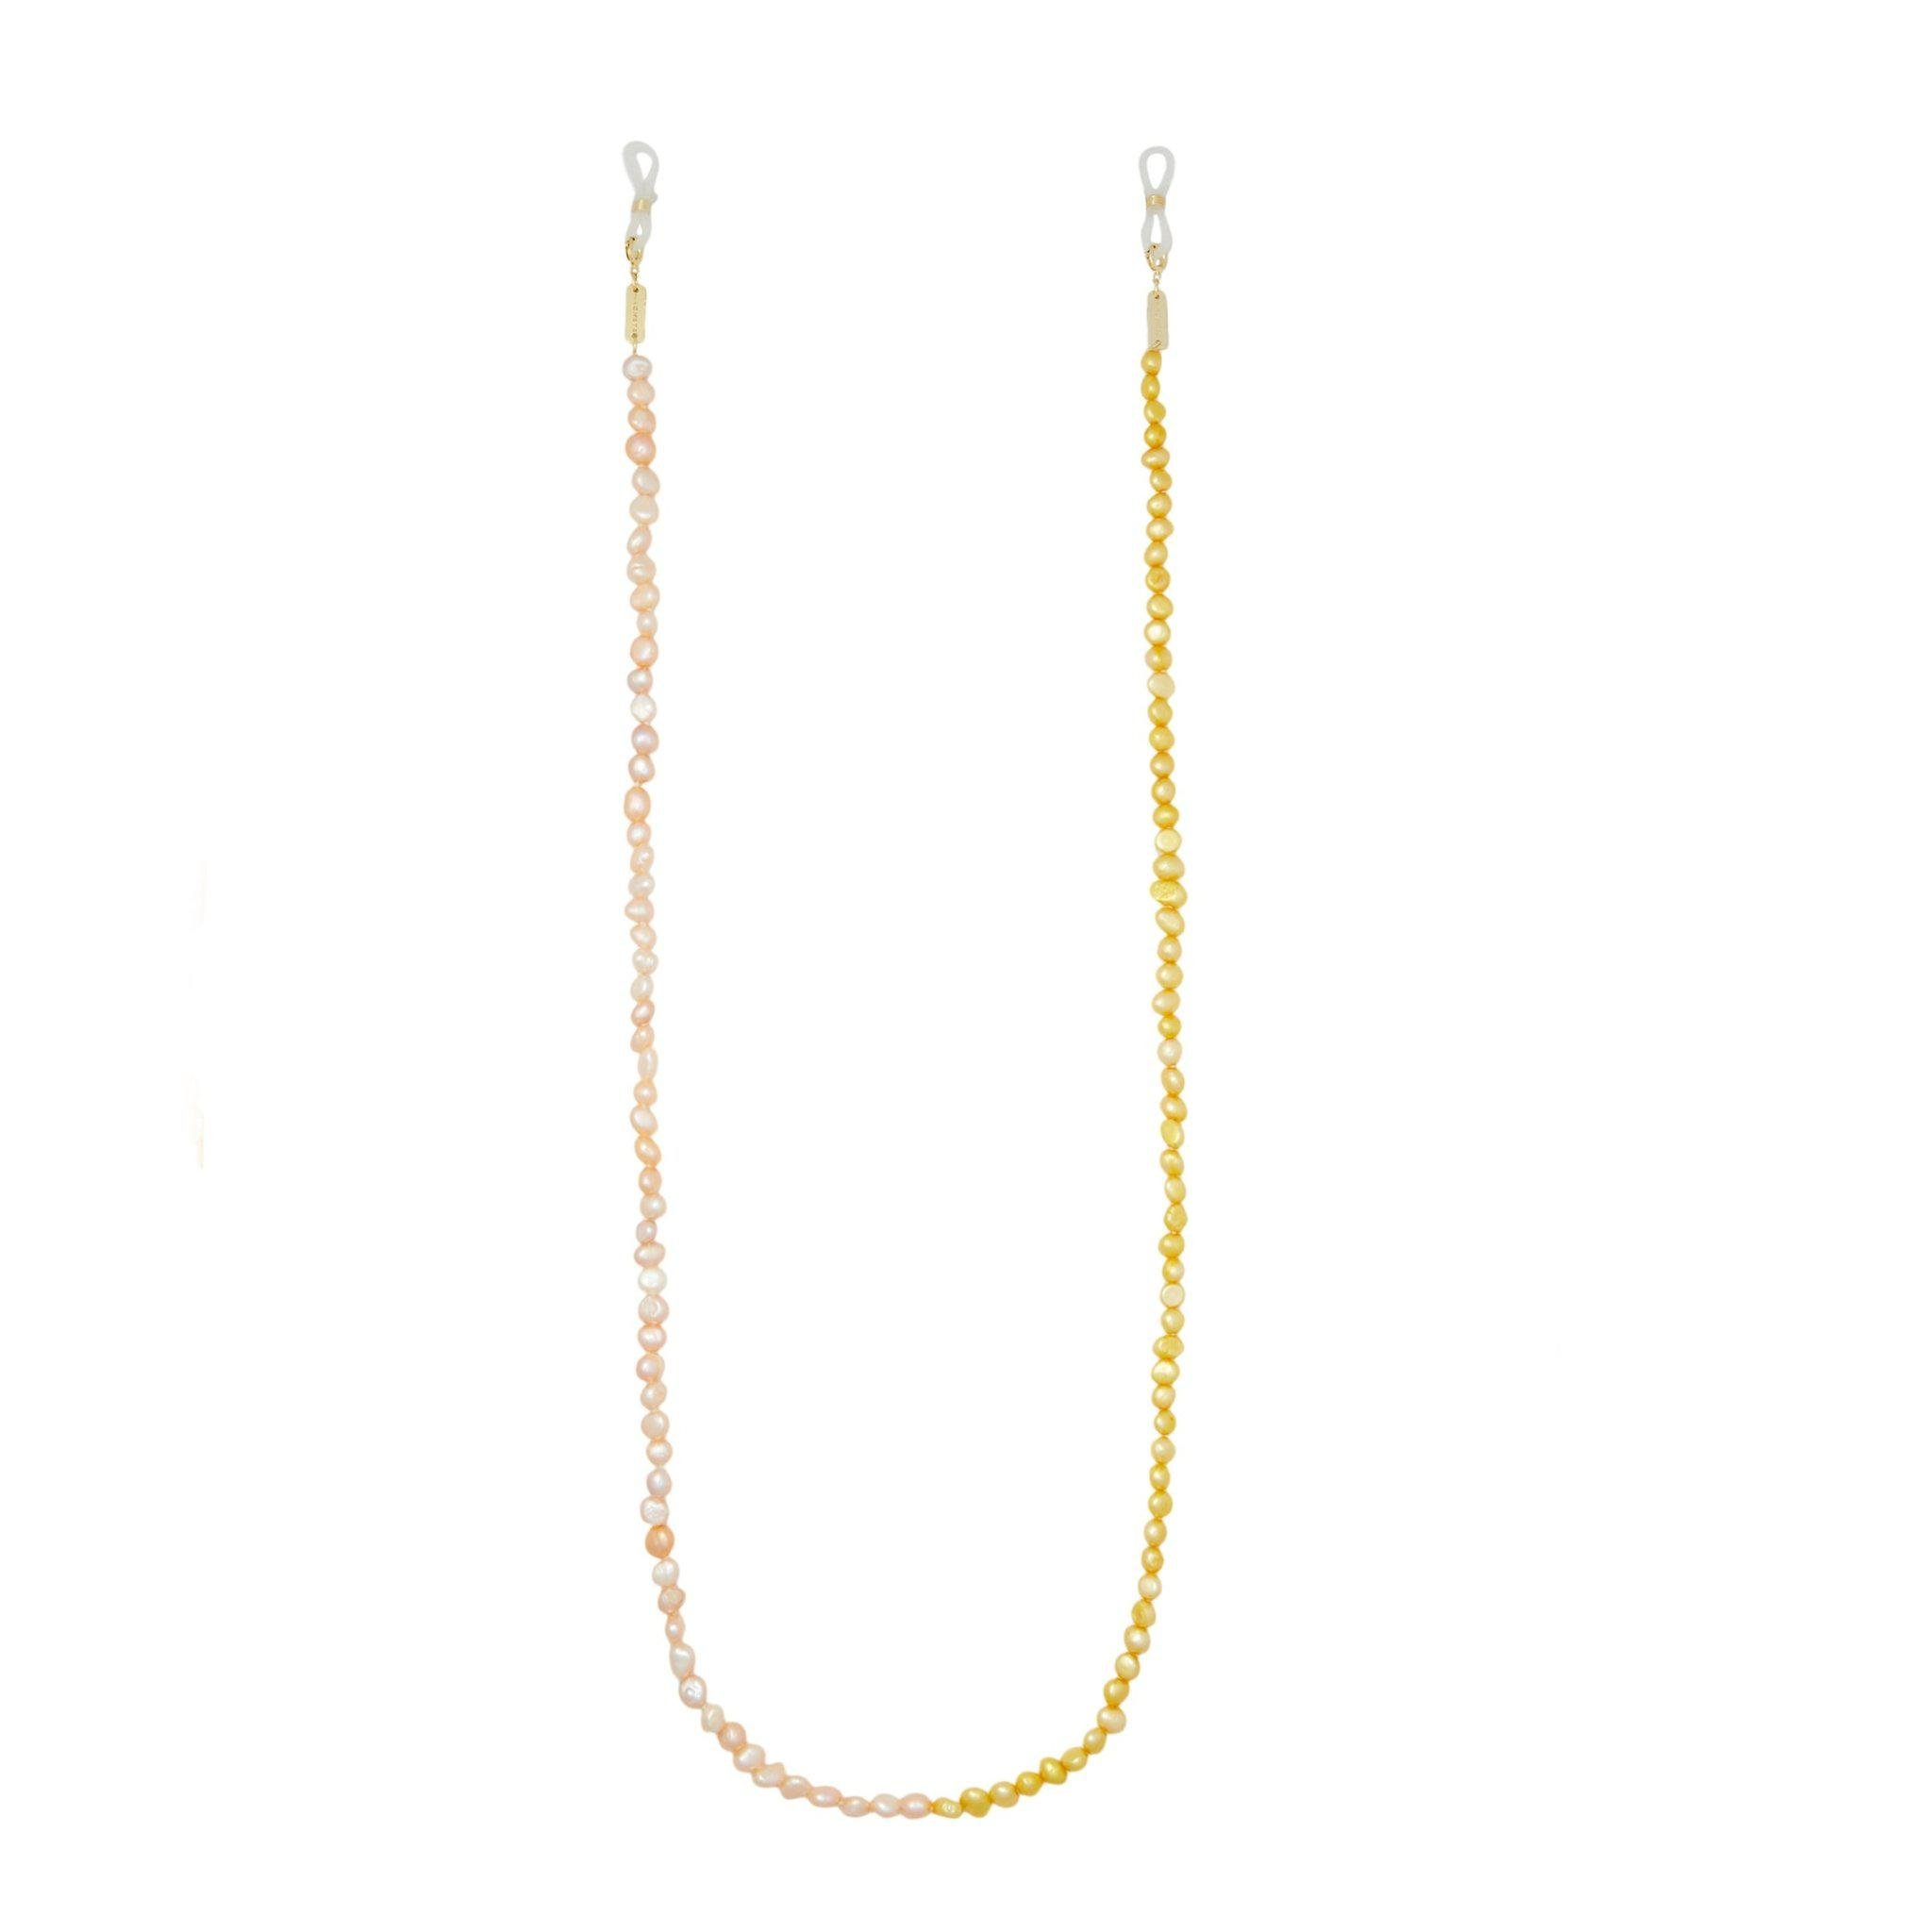 Mixed Freshwater Pearl Sunglas/Mask Chain in Yellow + Pink 0